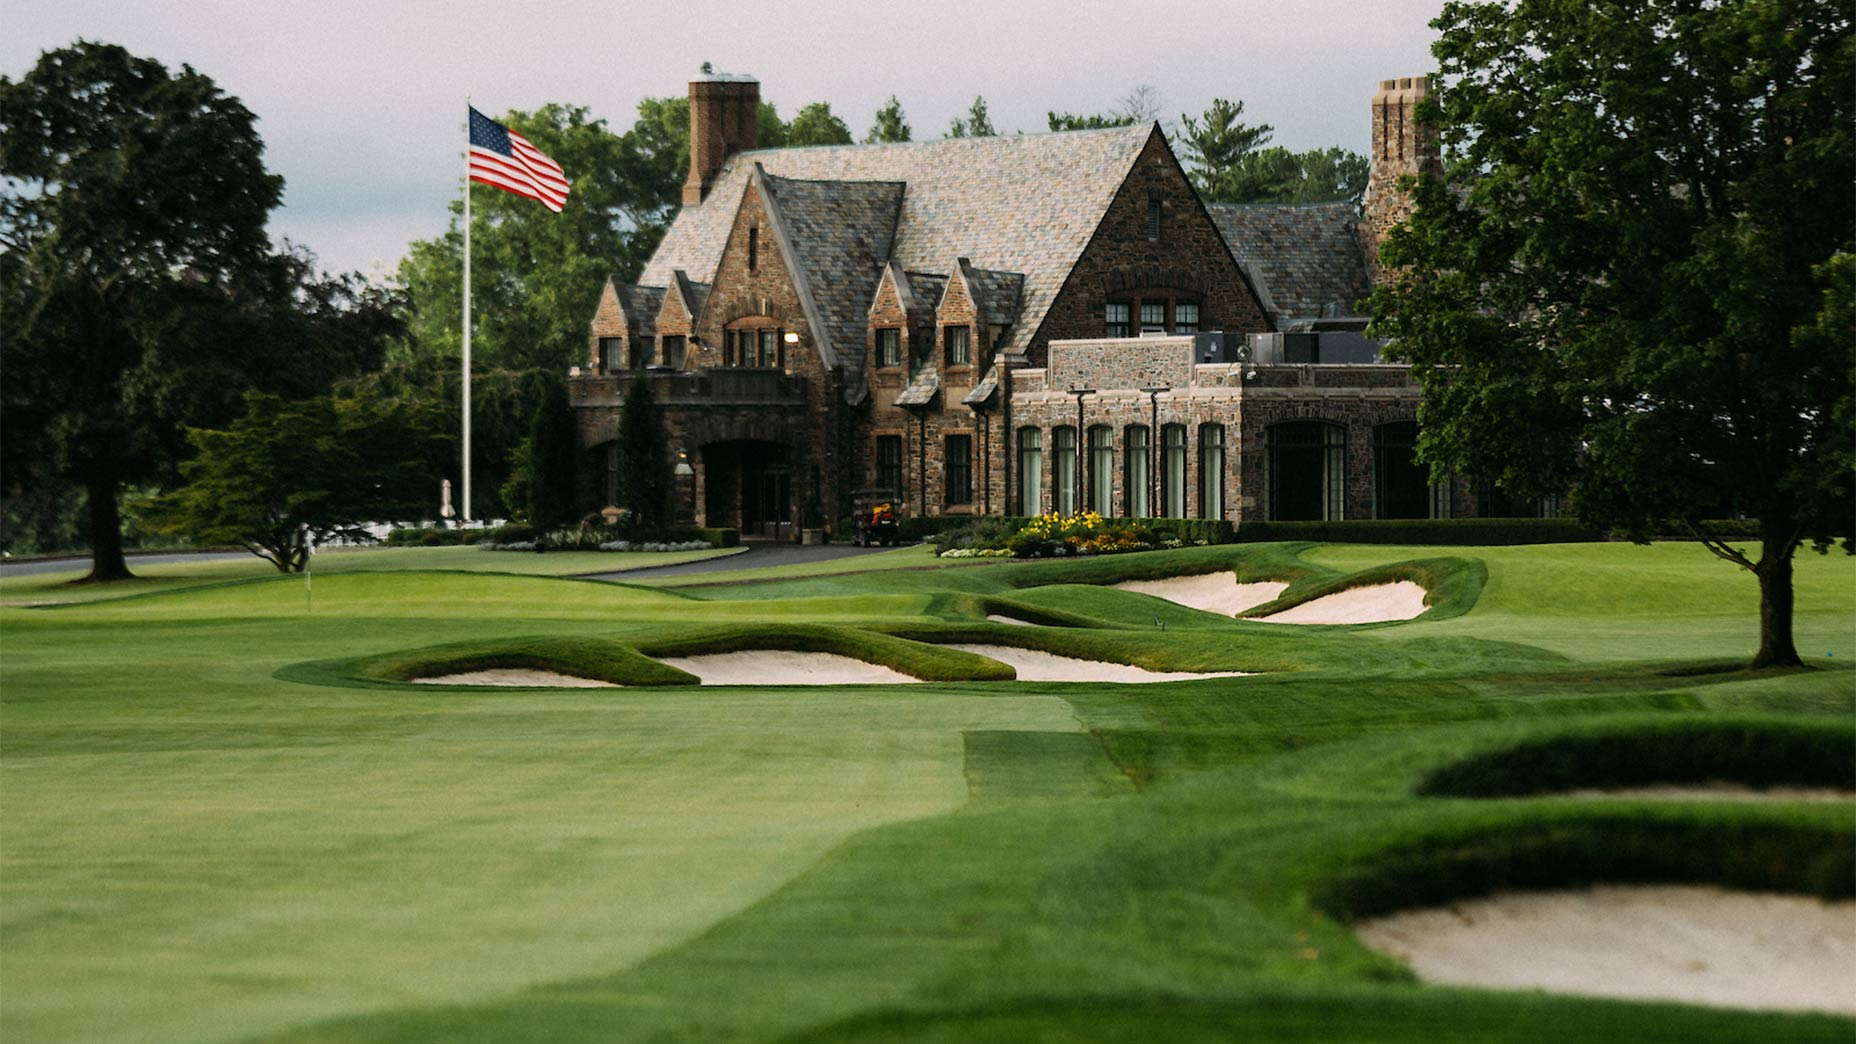 A view of the 9th hole and clubhouse at Winged Foot.